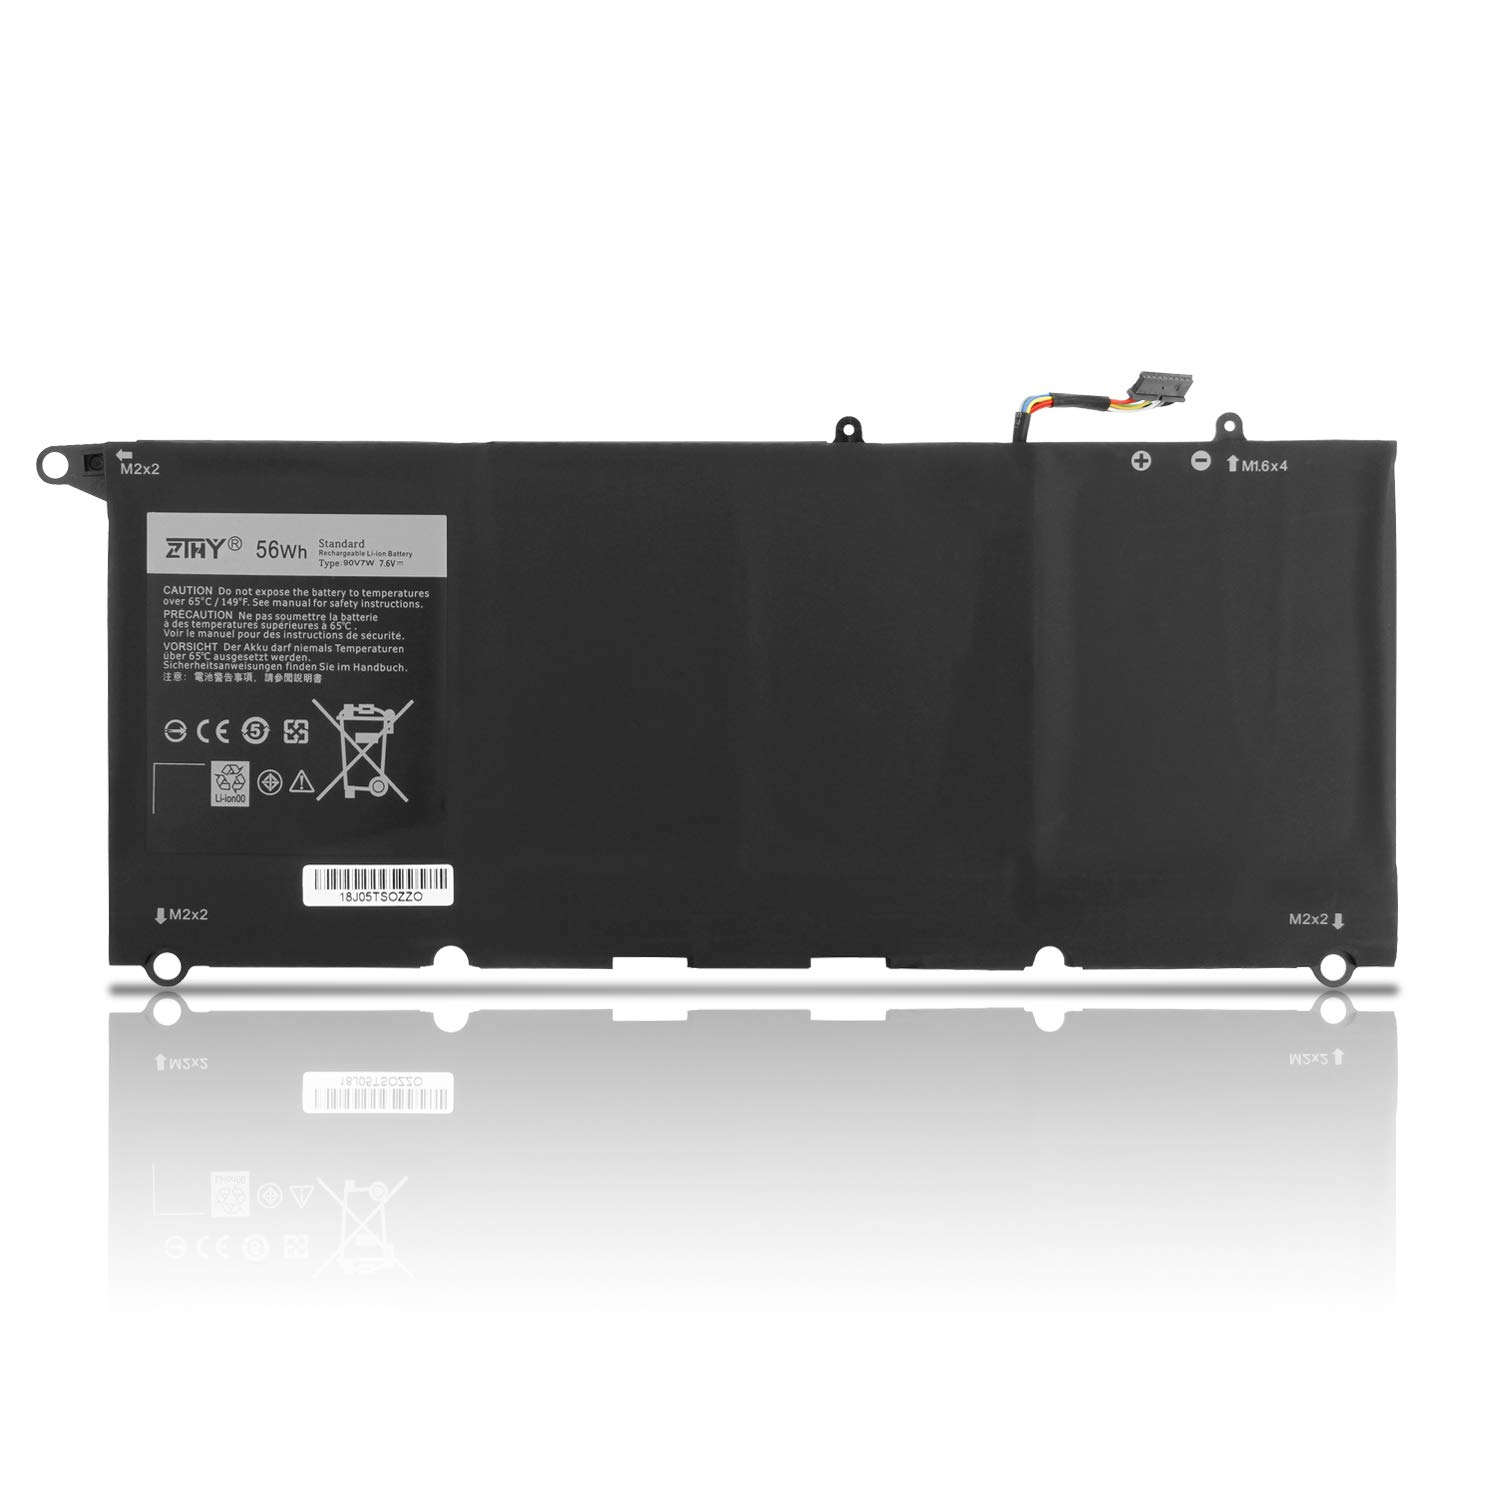 New 90V7W Laptop Battery Replacement for Dell XPS13 XPS 13 9343 9350 XPS13-9350-D1608 XPS13-9350 Notebook 5K9CP DIN02 9OV7W 56WH 4-Cell 7.6V 7435mAh by ZTHY